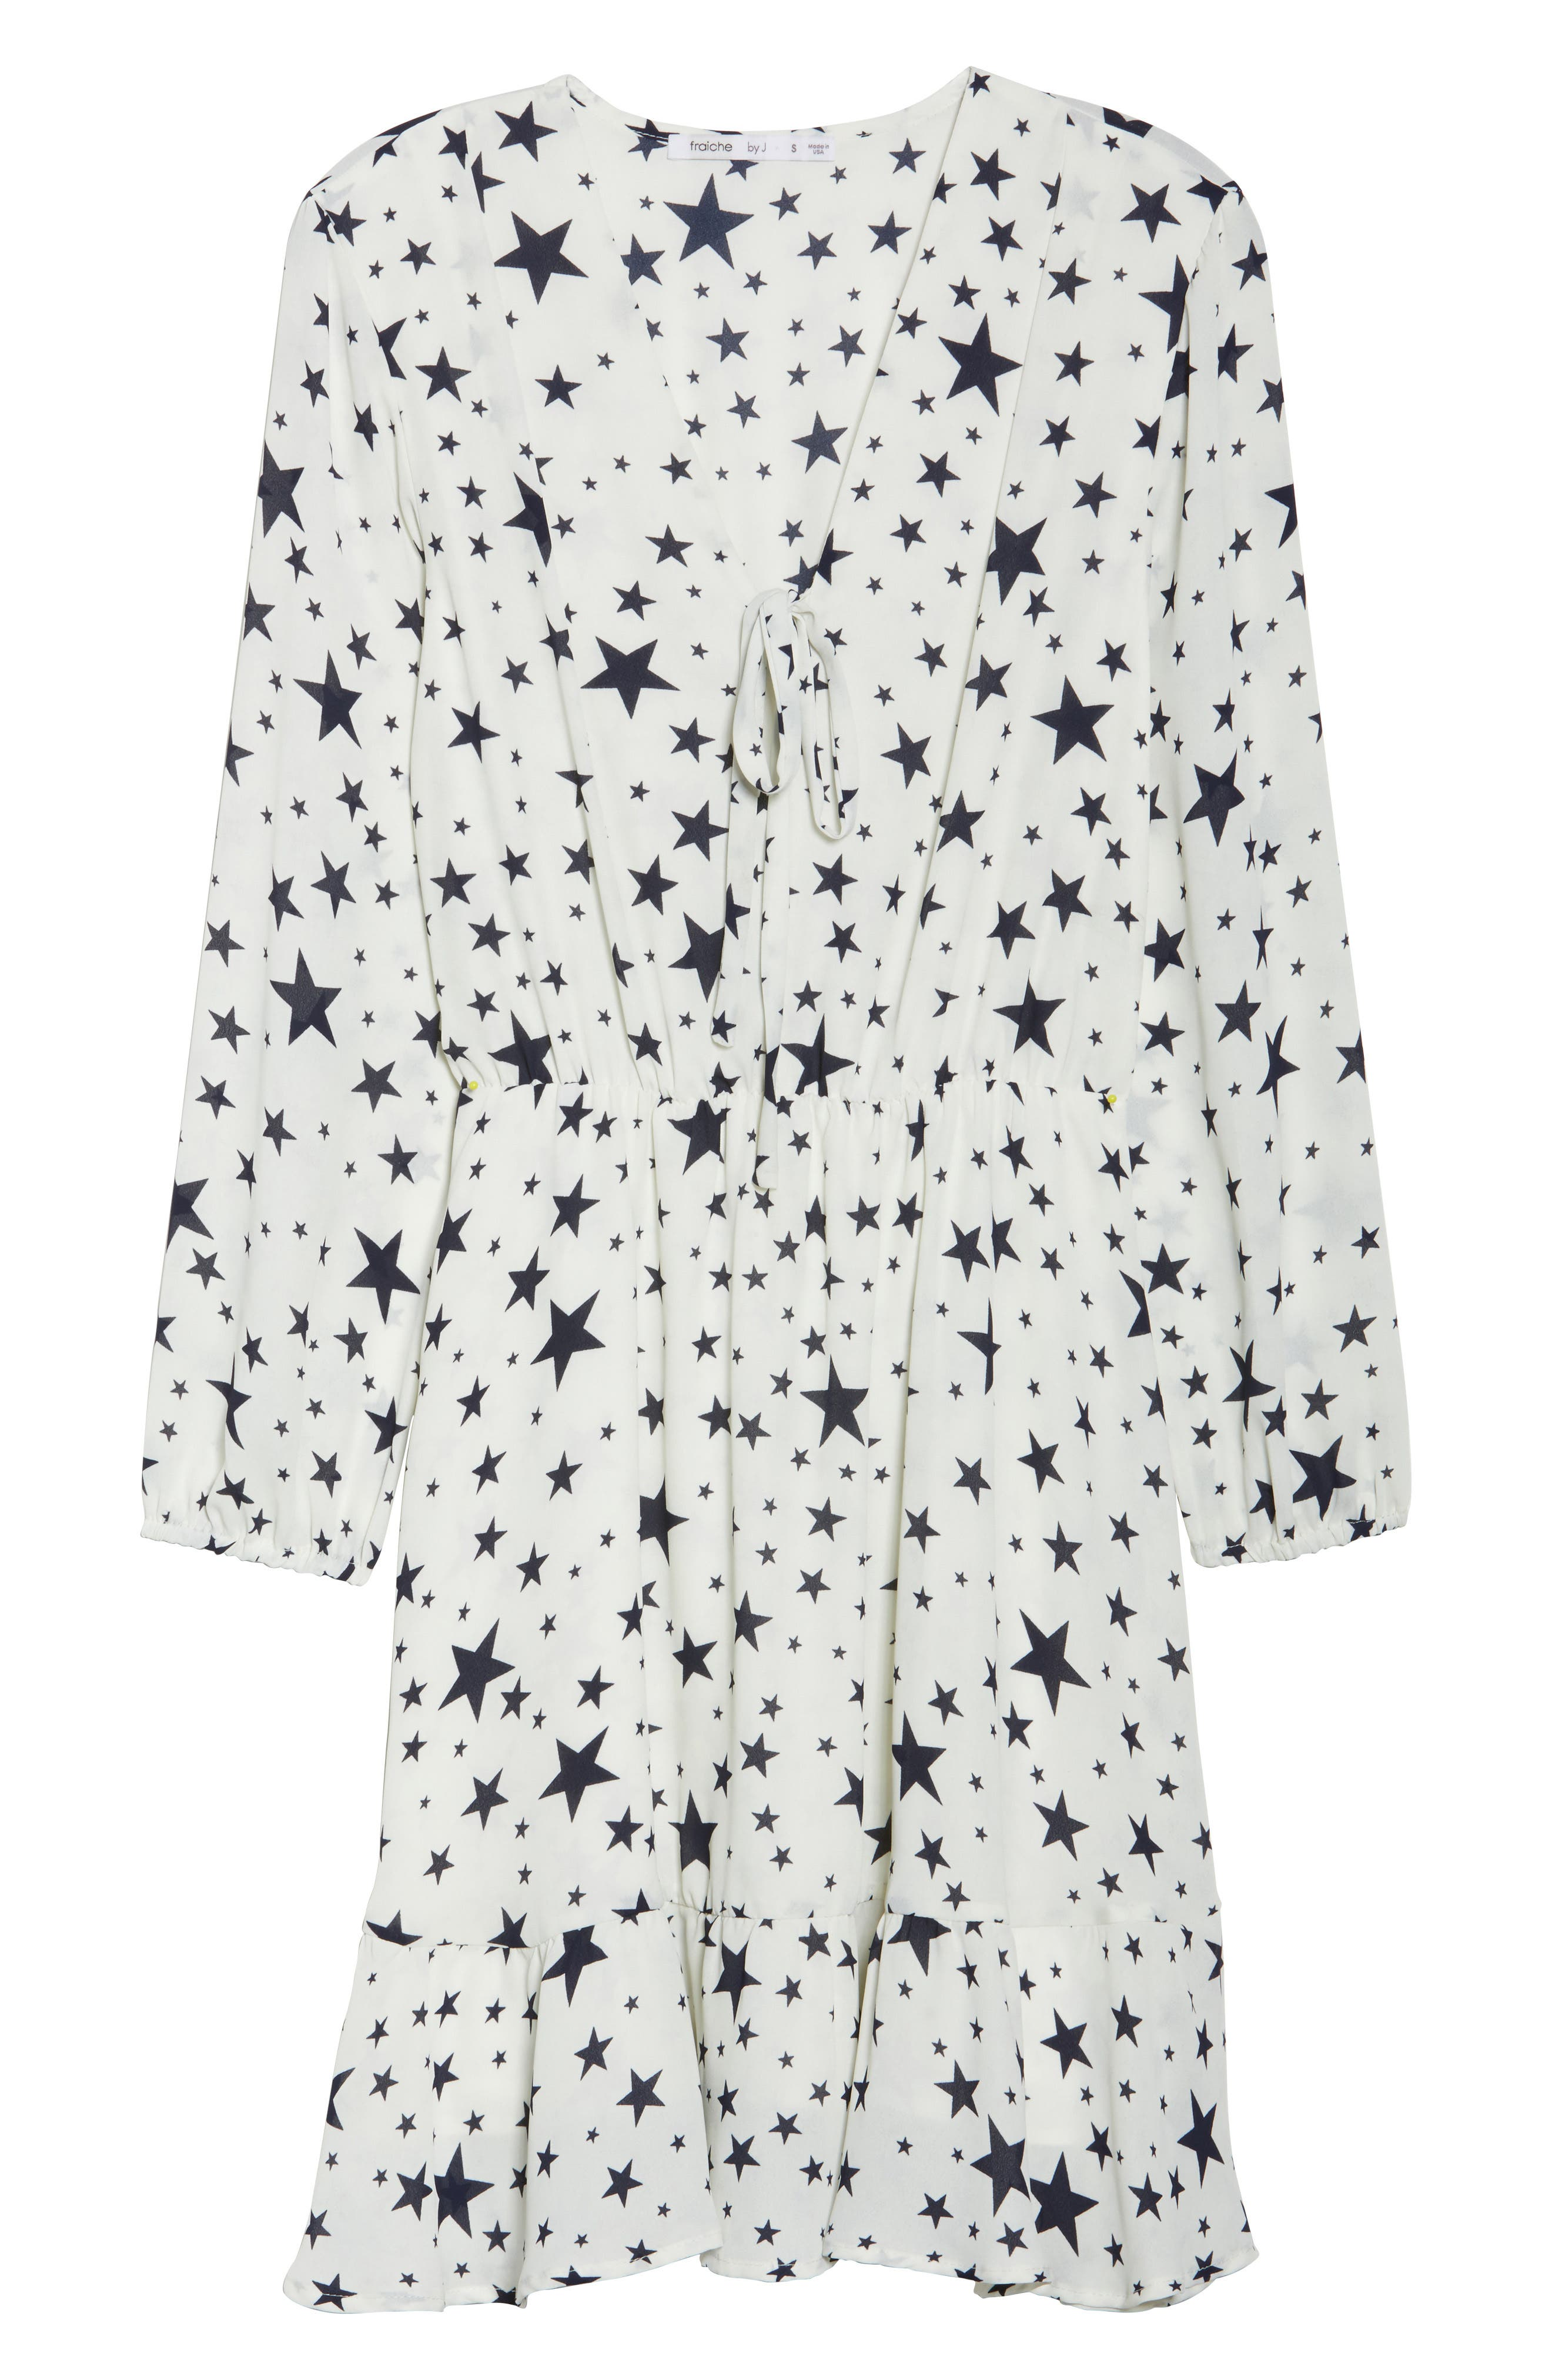 Star Tie Front Dress,                             Alternate thumbnail 7, color,                             STAR NAVY